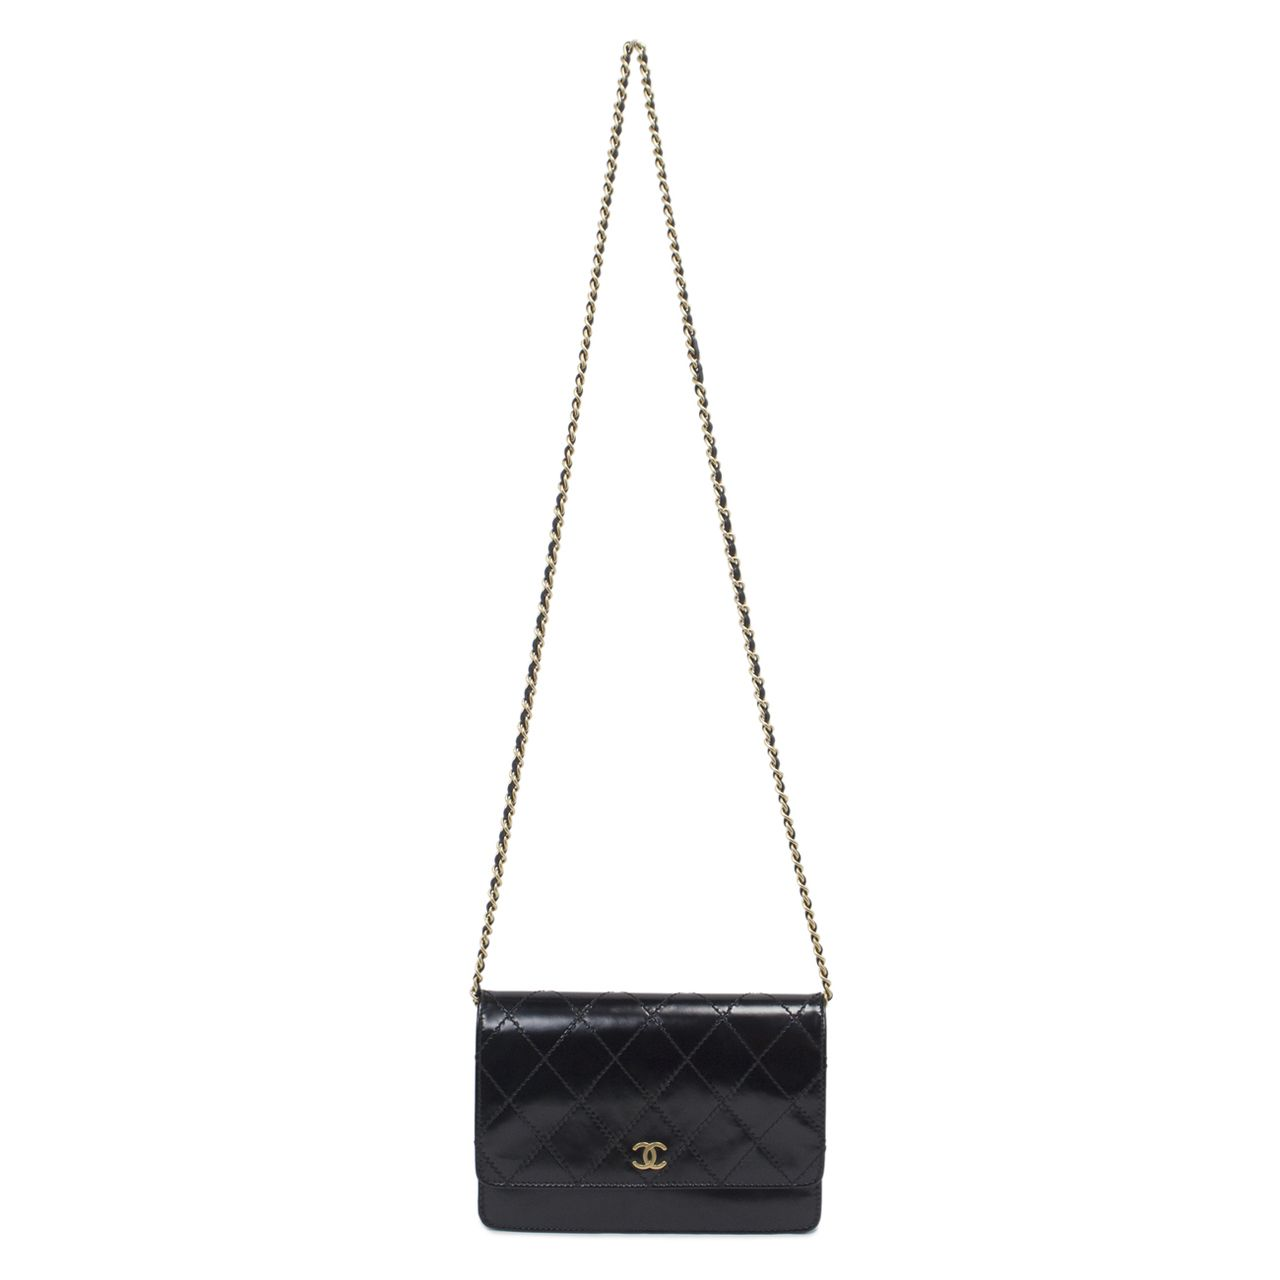 2f4cf0042c21 Chanel Black Smooth Leather Wallet On Chain WOC - modaselle | Chanel ...